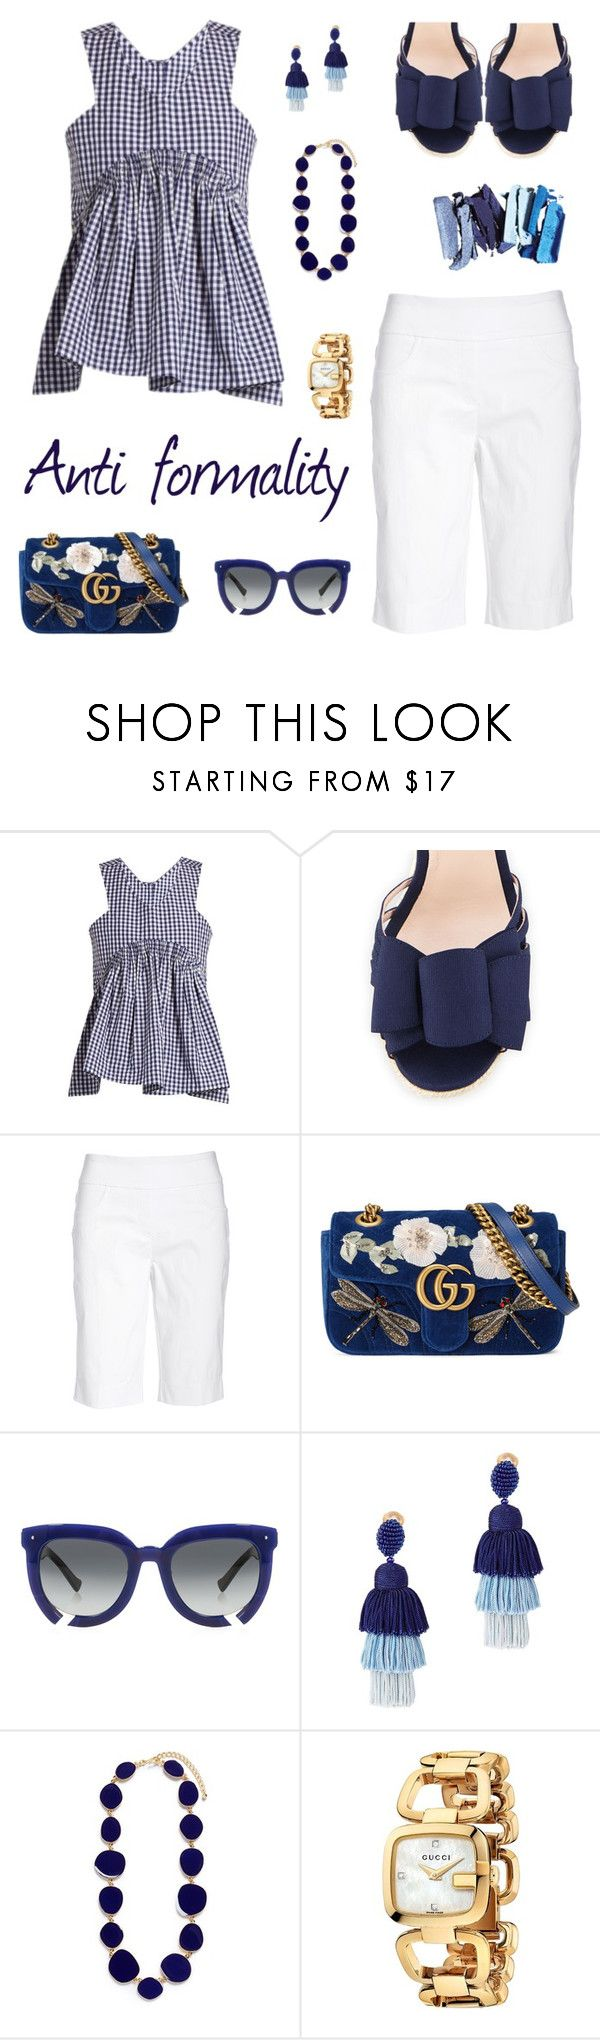 """""""P. G. # 50"""" by patricia-gonzalez-1 ❤ liked on Polyvore featuring Teija, Kate Spade, Ruby Rd., Gucci, Grey Ant, Oscar de la Renta and Kenneth Jay Lane"""